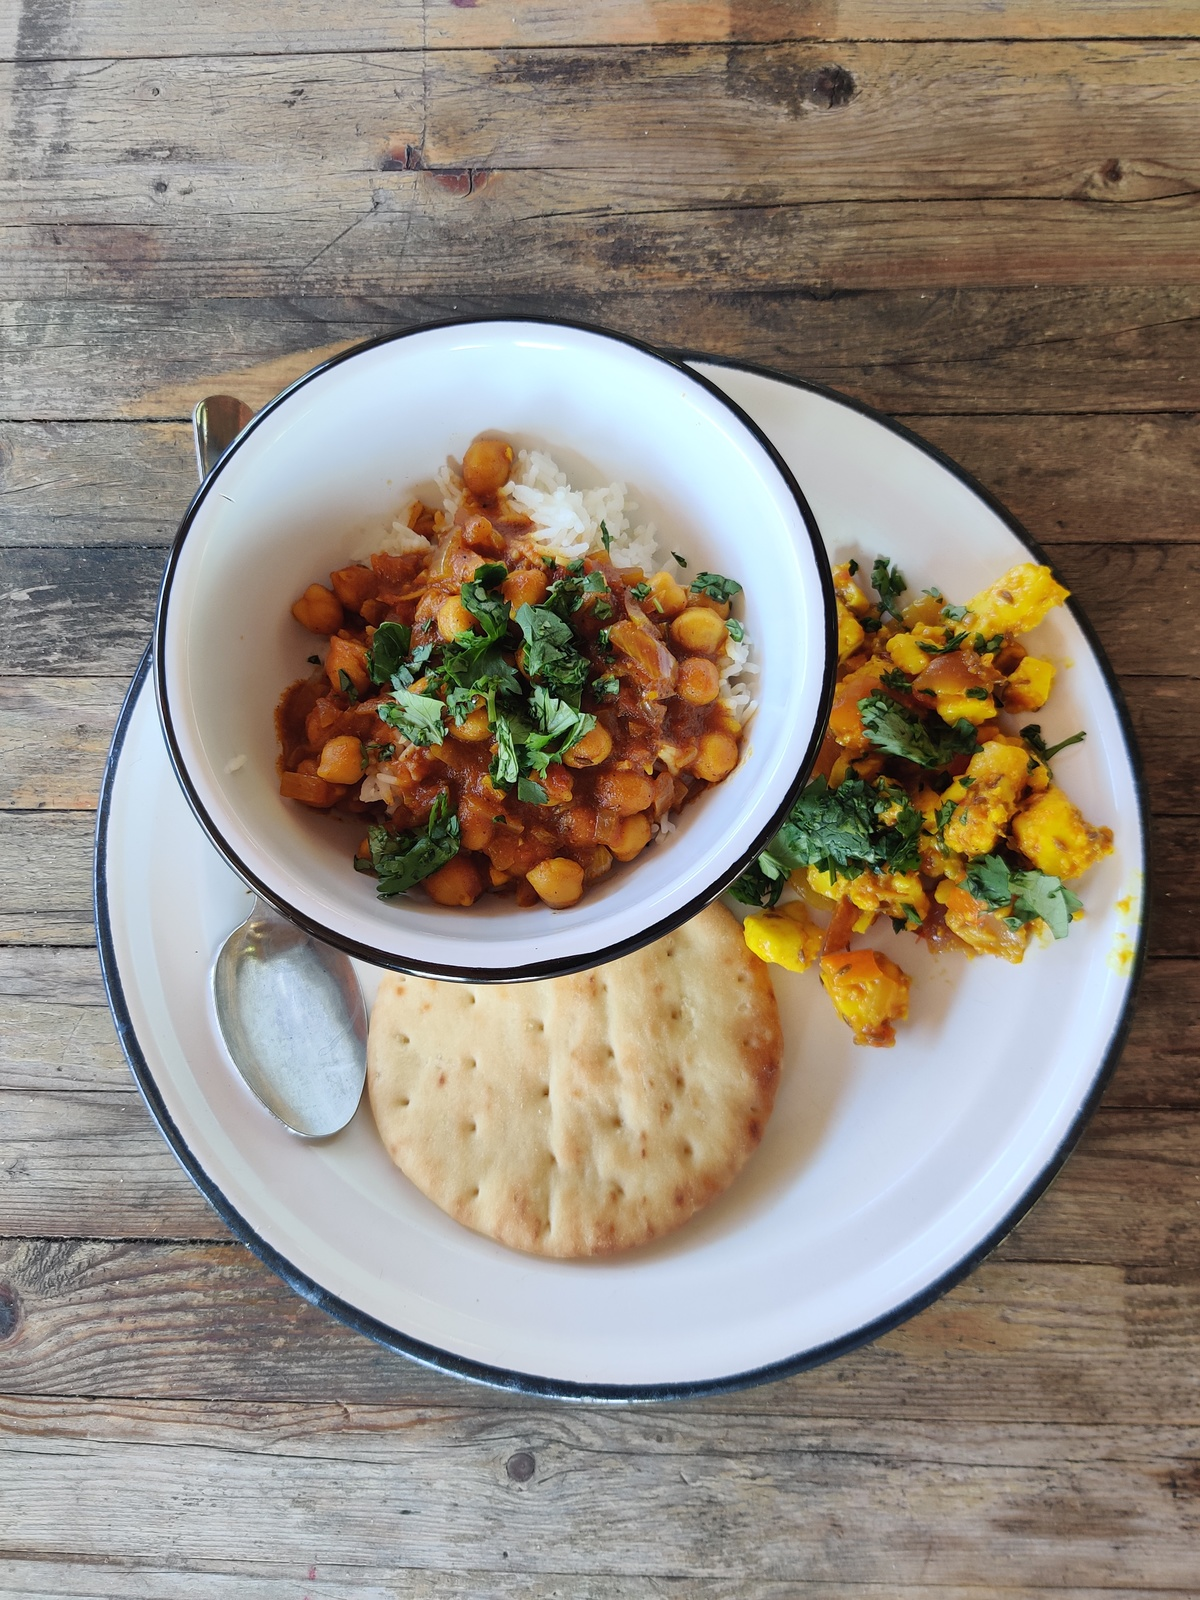 a bowl of chole over rice on a plate with bread and salad.